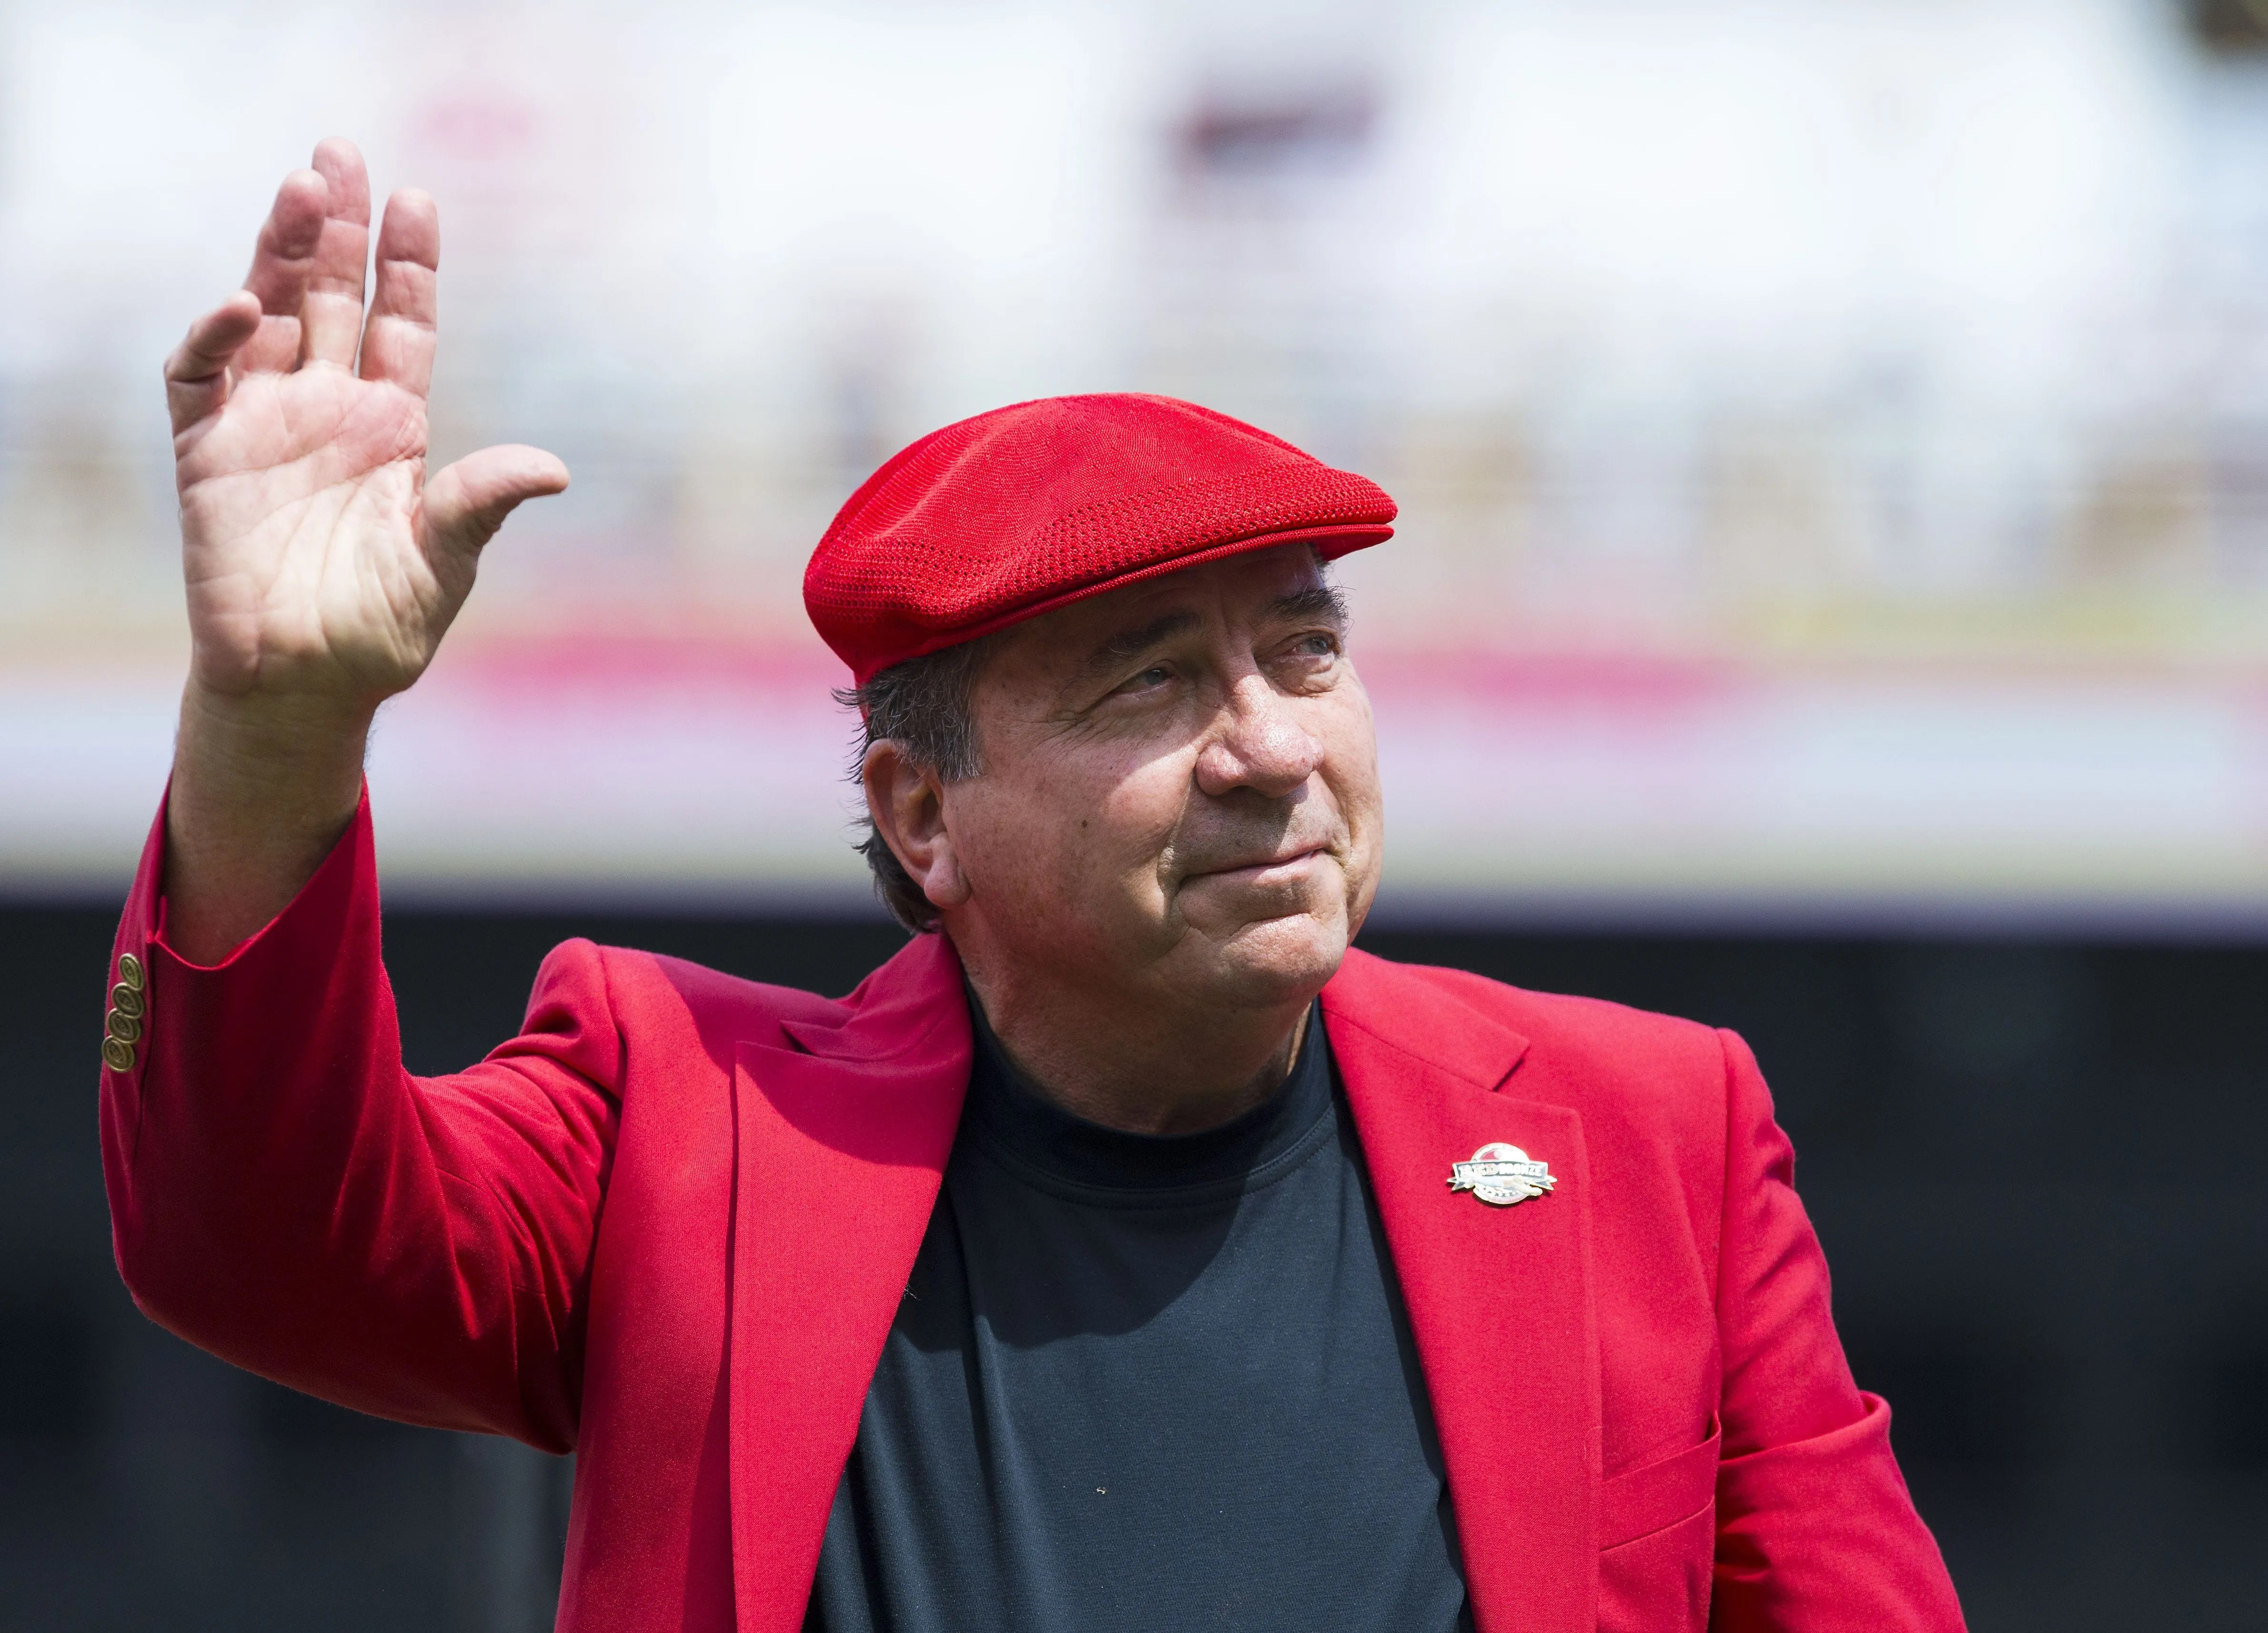 Johnny Bench during a ceremony at Cincinnati's Great American Ball Park in 2017.